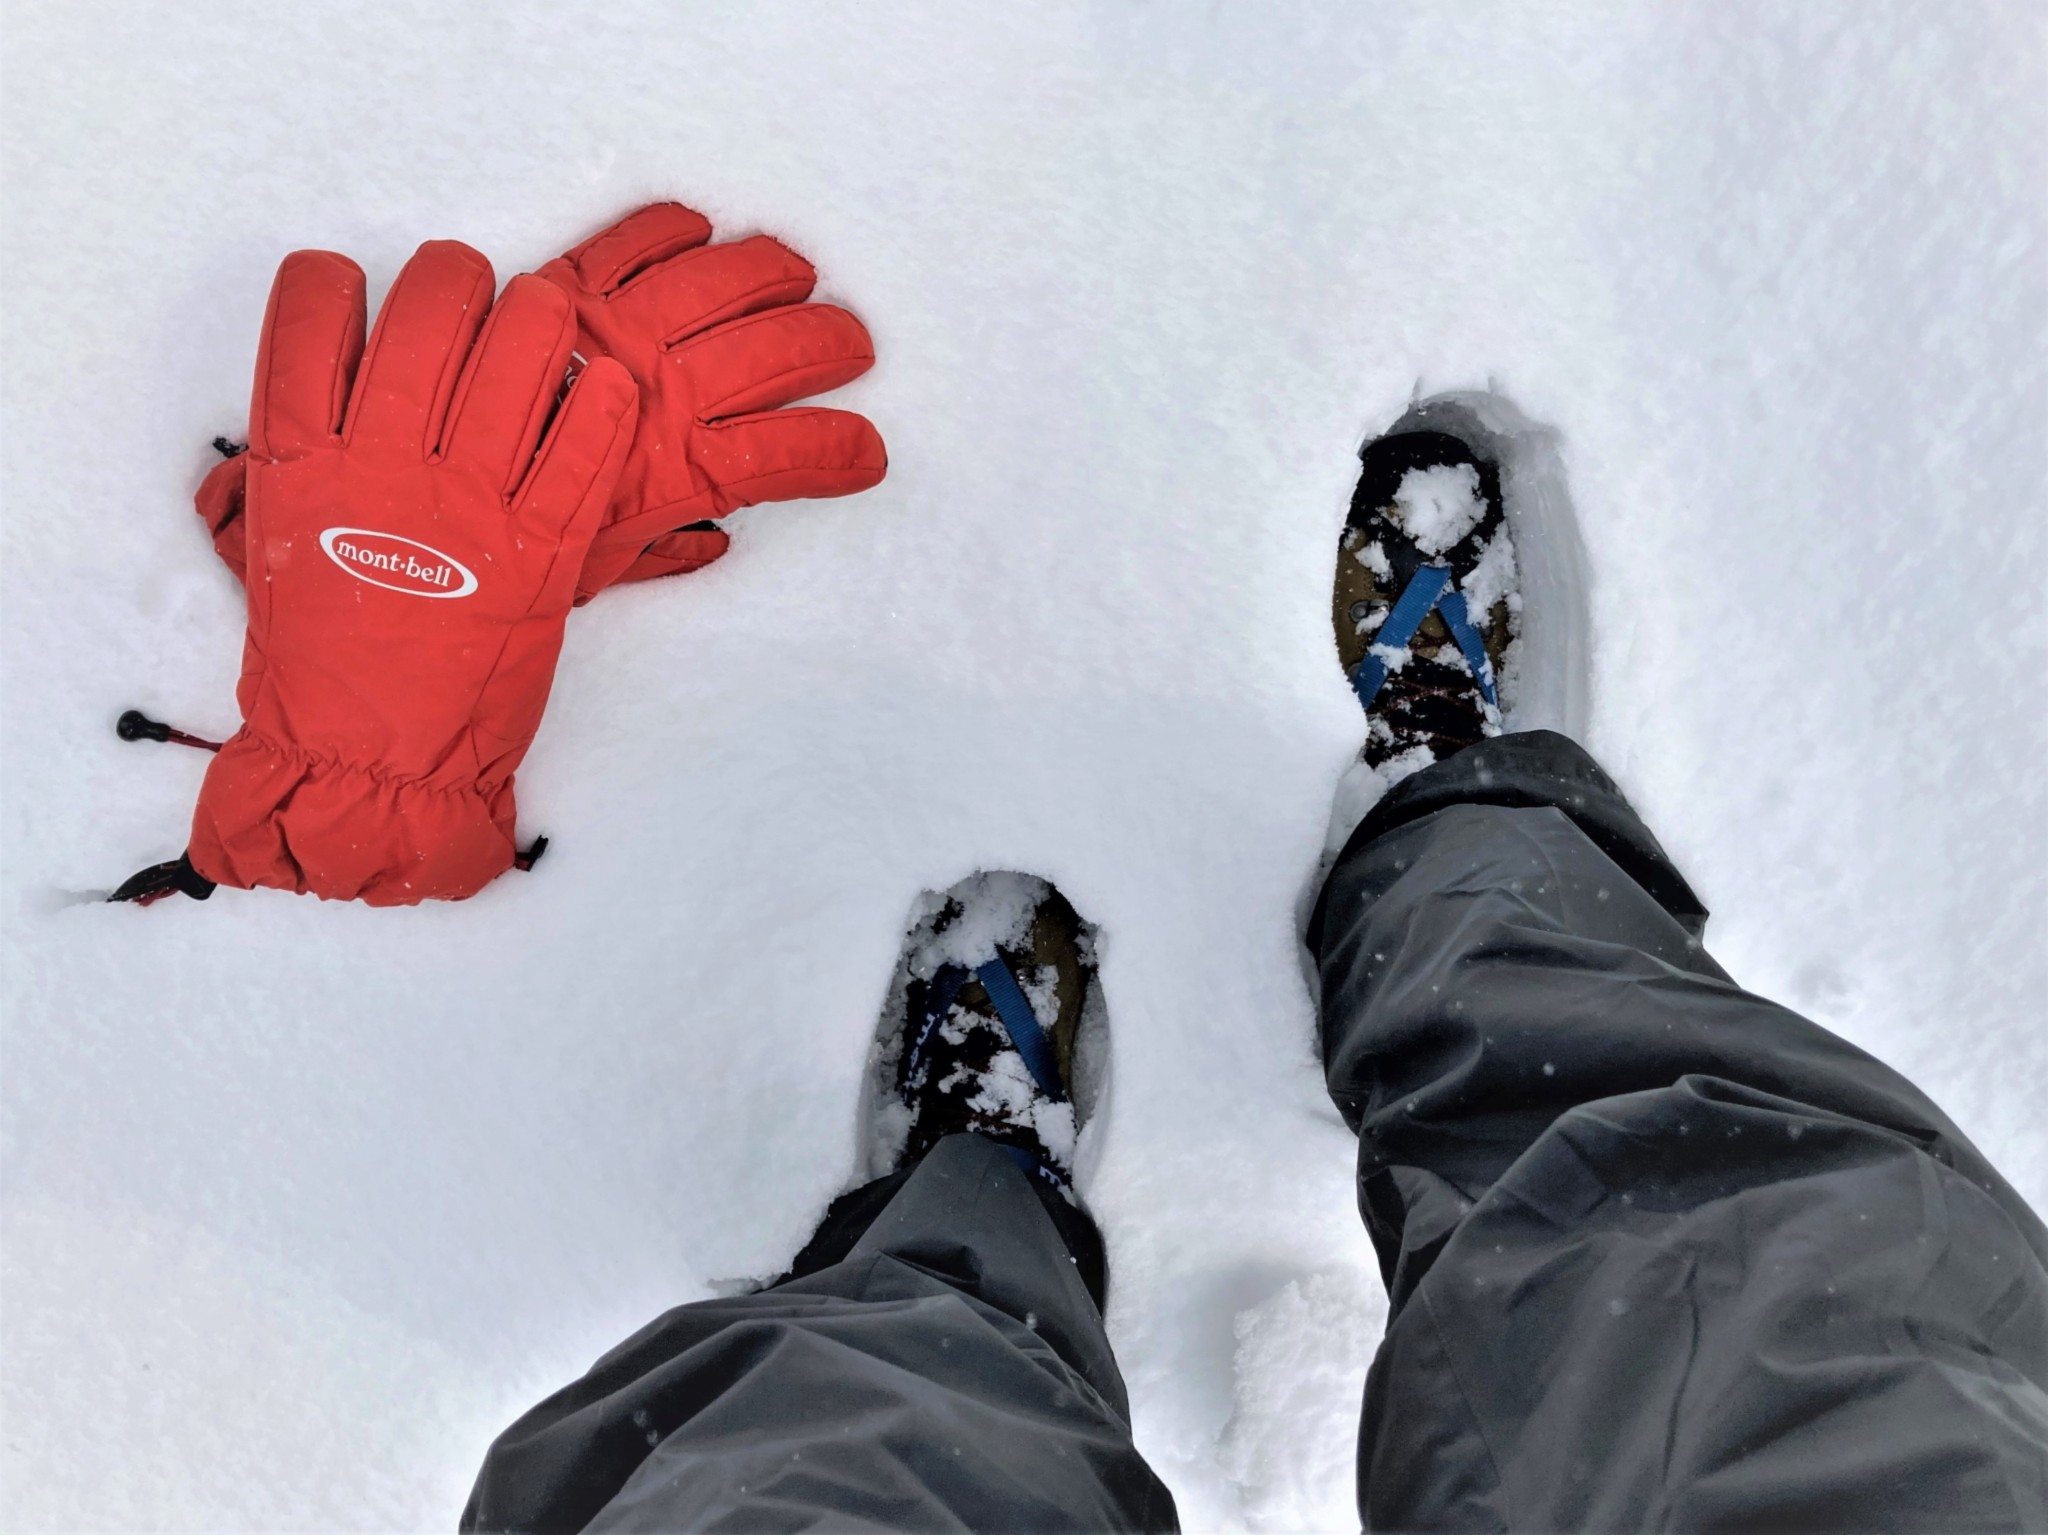 A man walking through deep snow with crampons and bright red gloves.